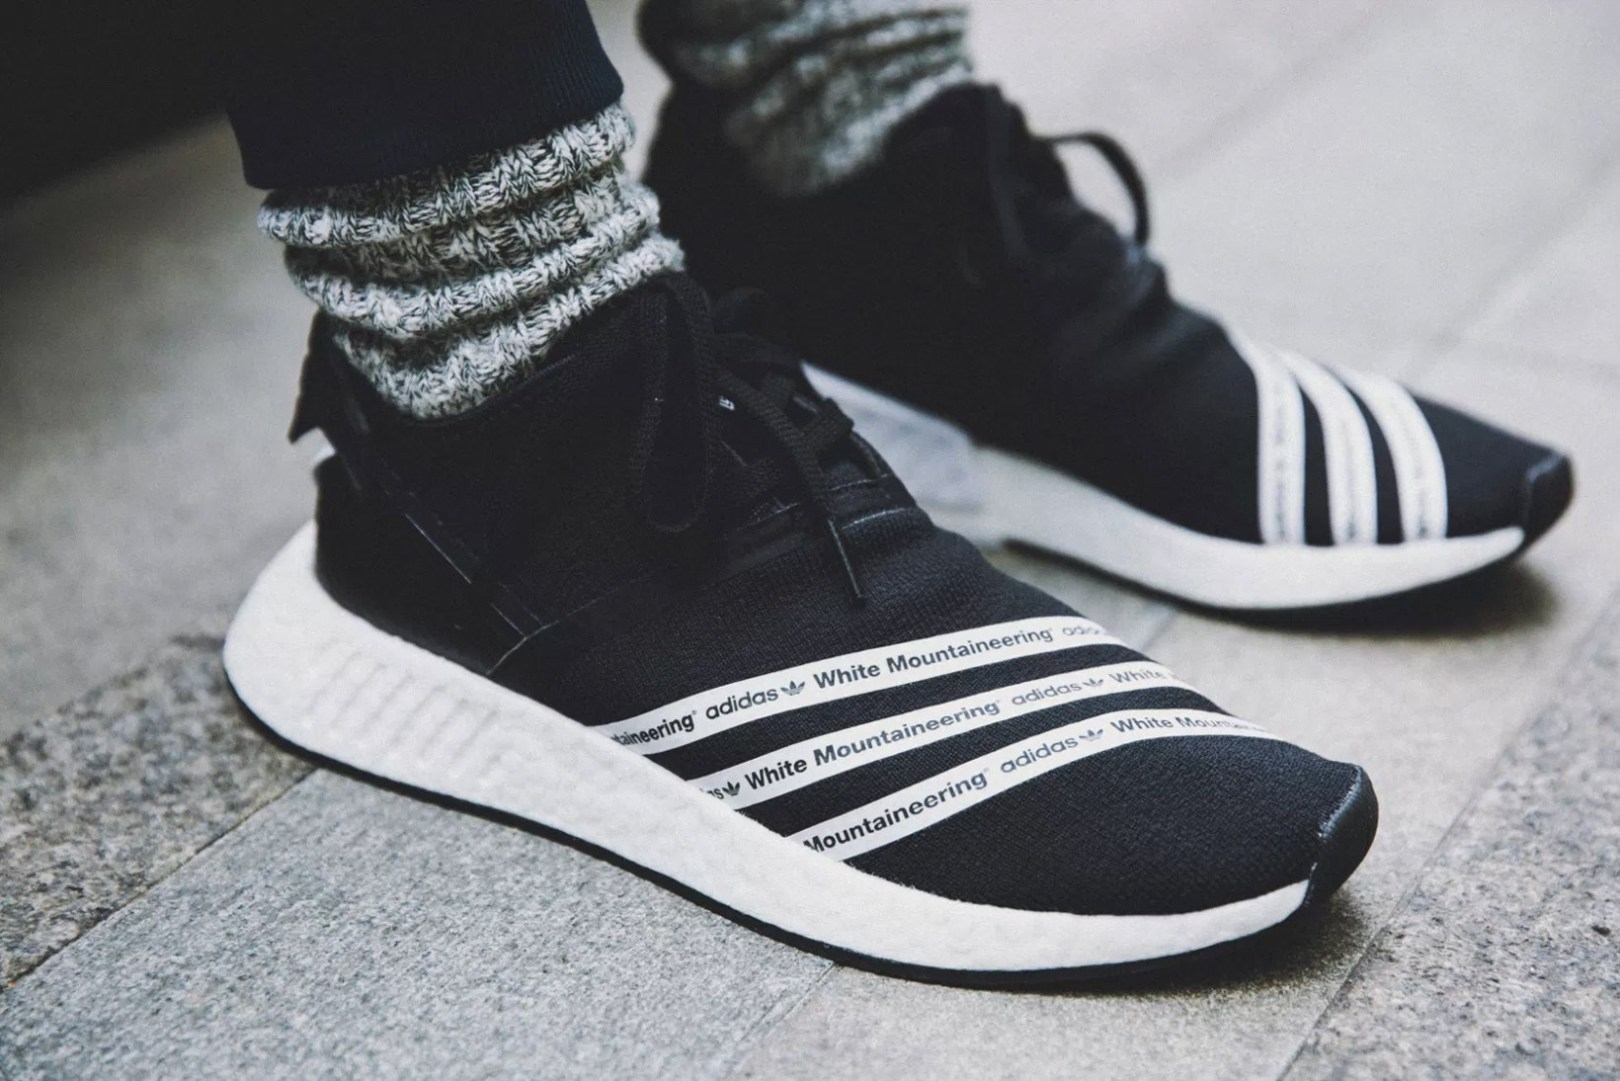 7a8355c0fbcb9 White Mountaineering and adidas Originals Are Releasing an Entire